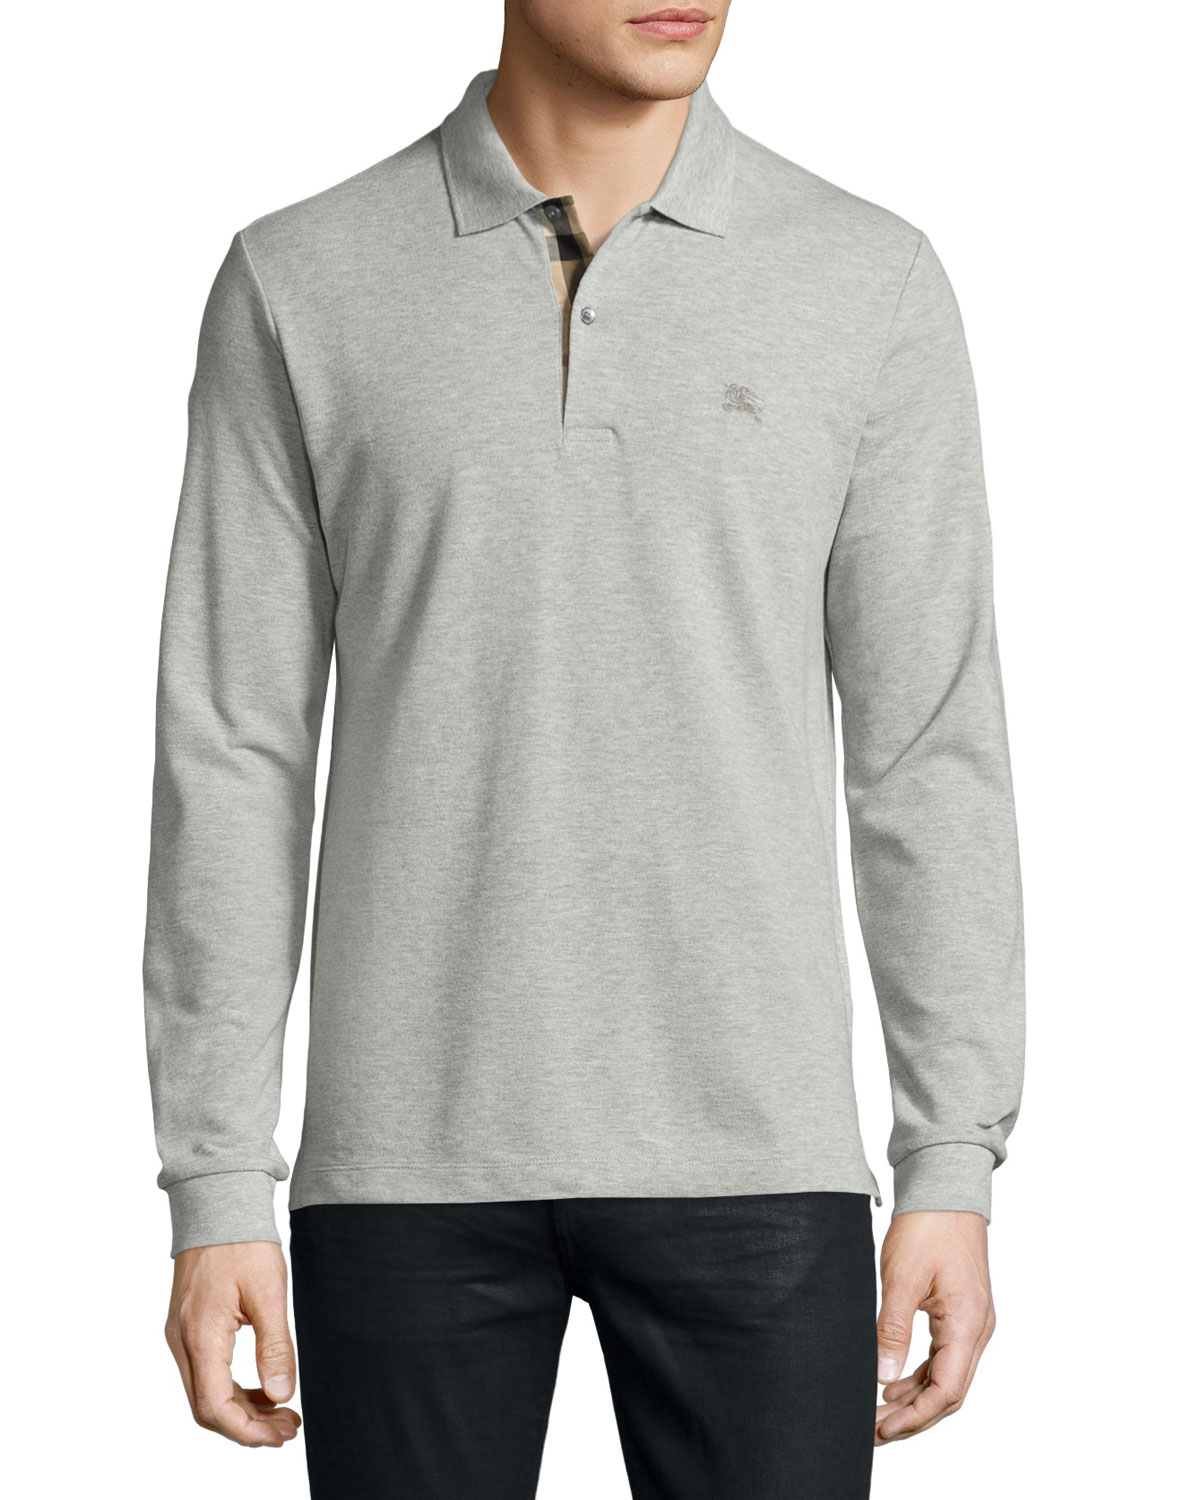 Long-Sleeve Oxford Polo Shirt, Gray Melange